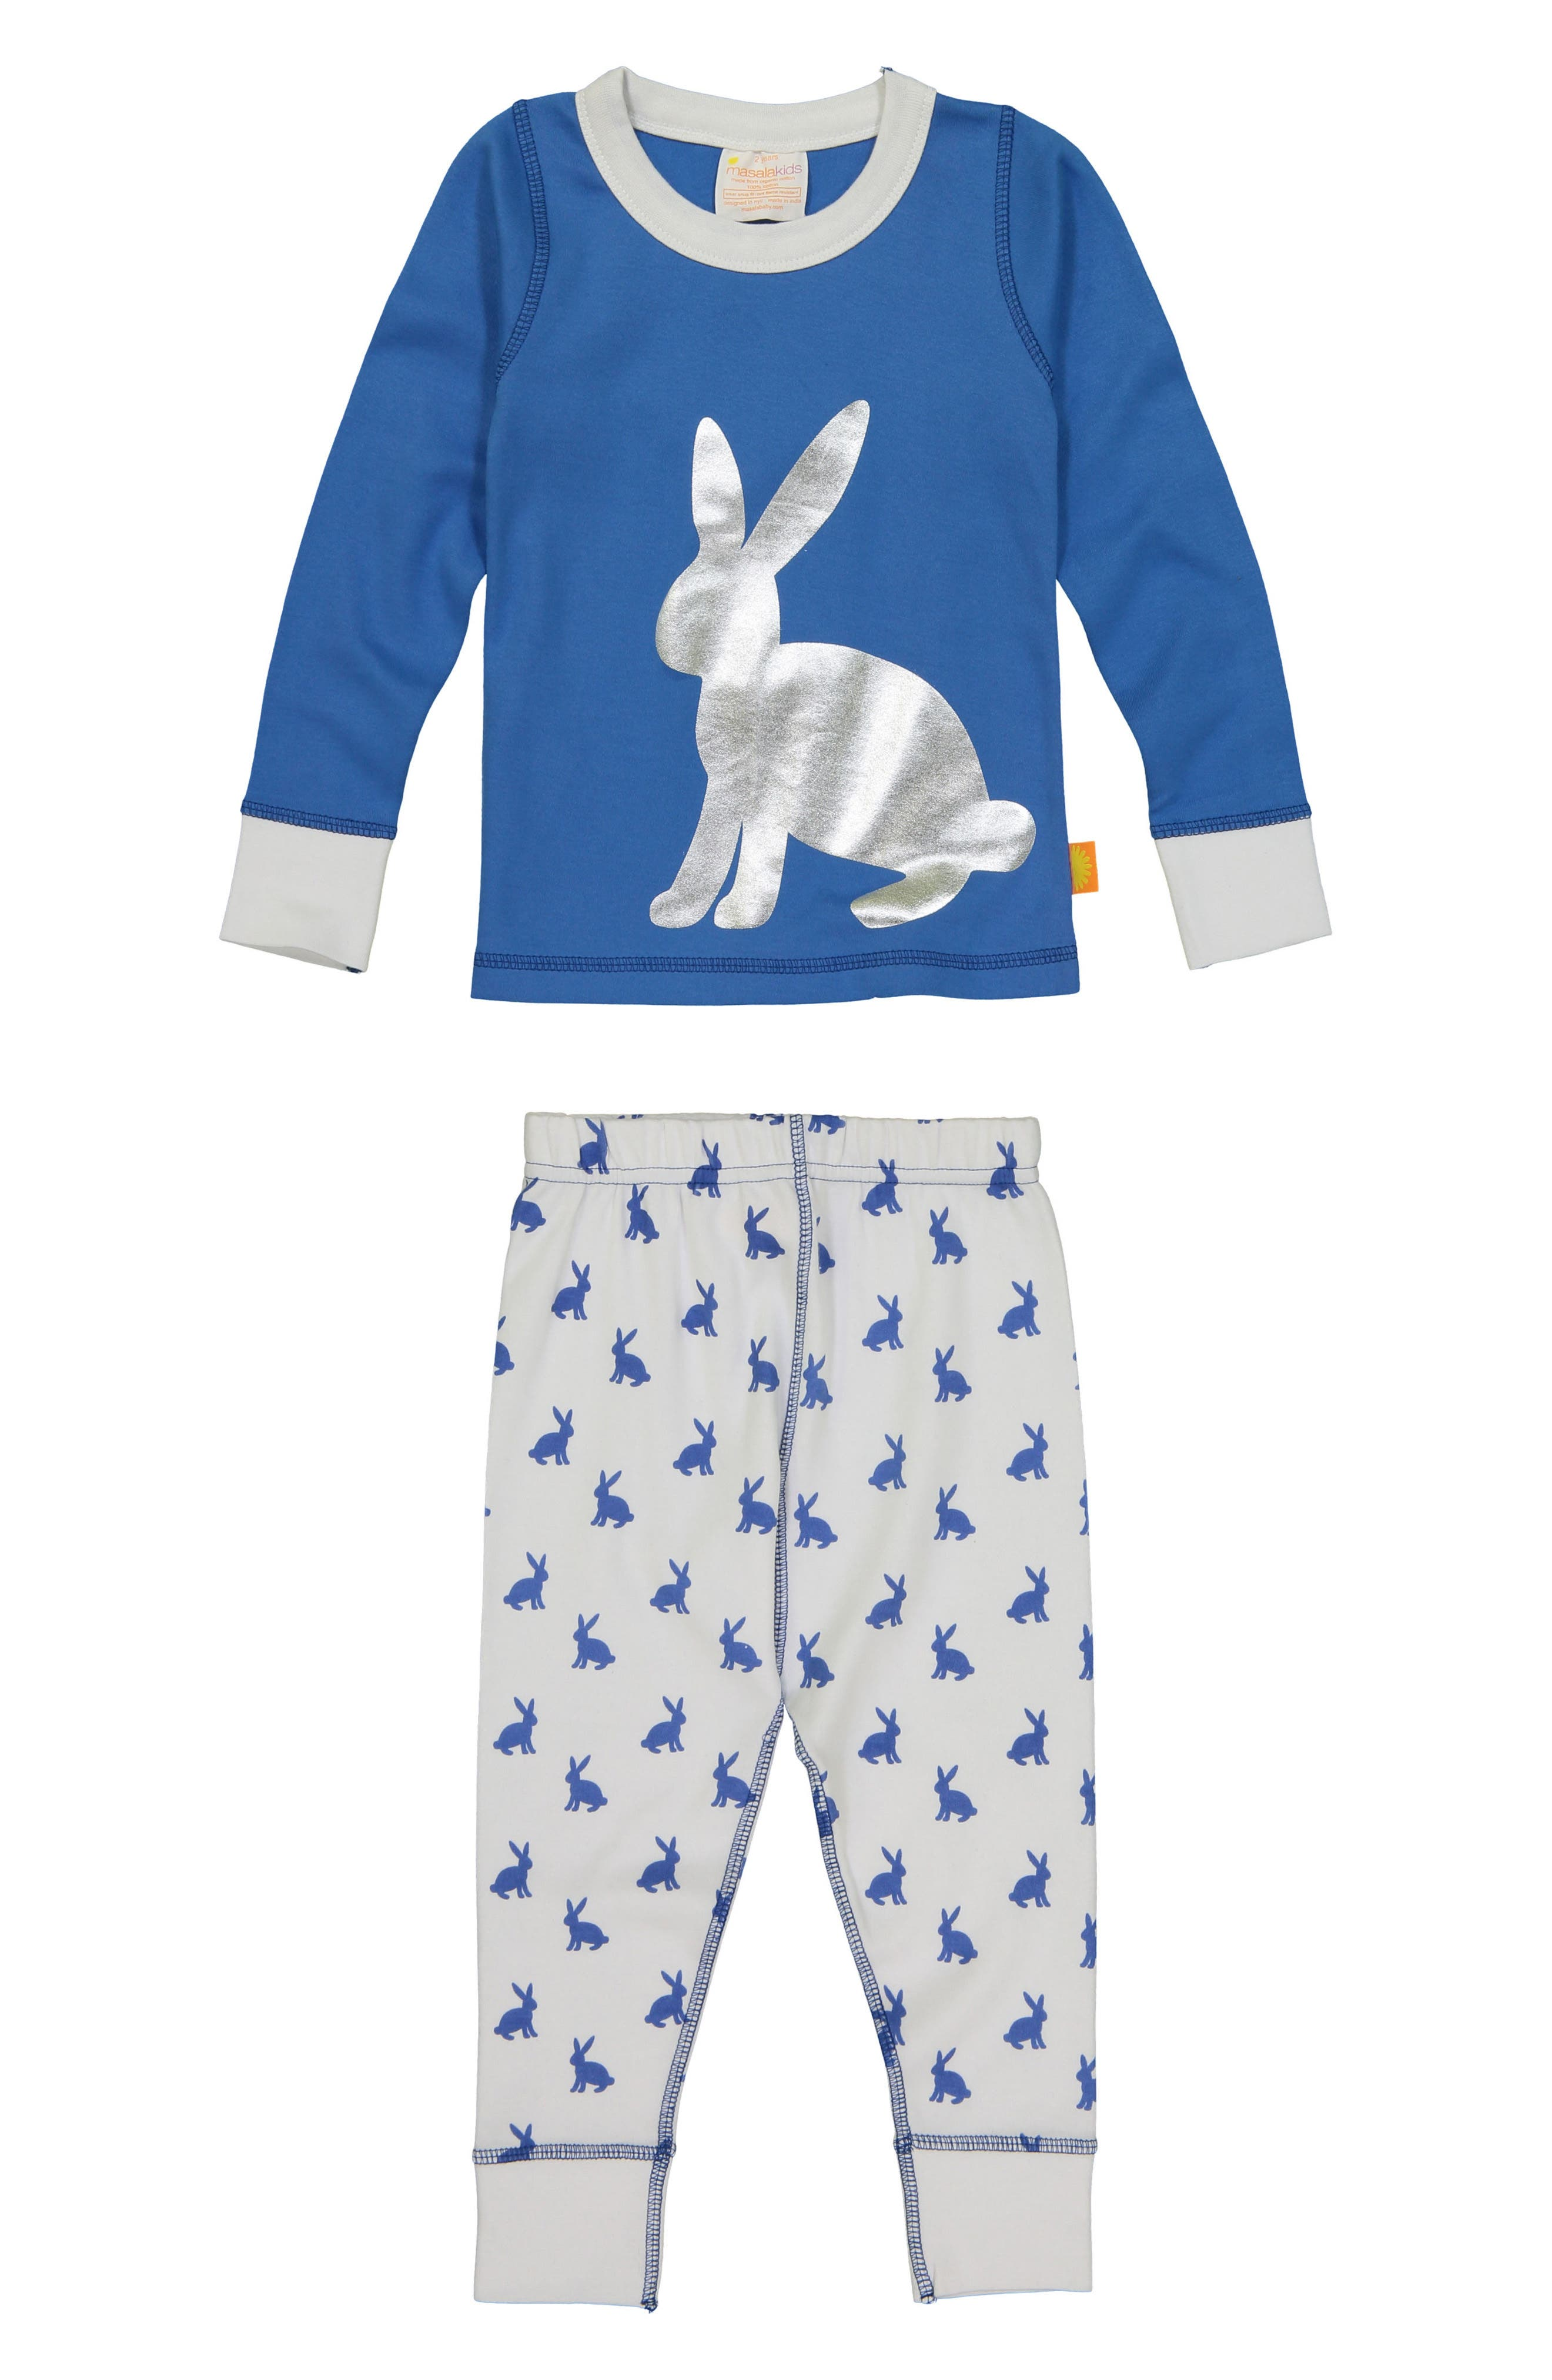 Bunny Hop Fitted Two-Piece Pajamas,                         Main,                         color, Blue